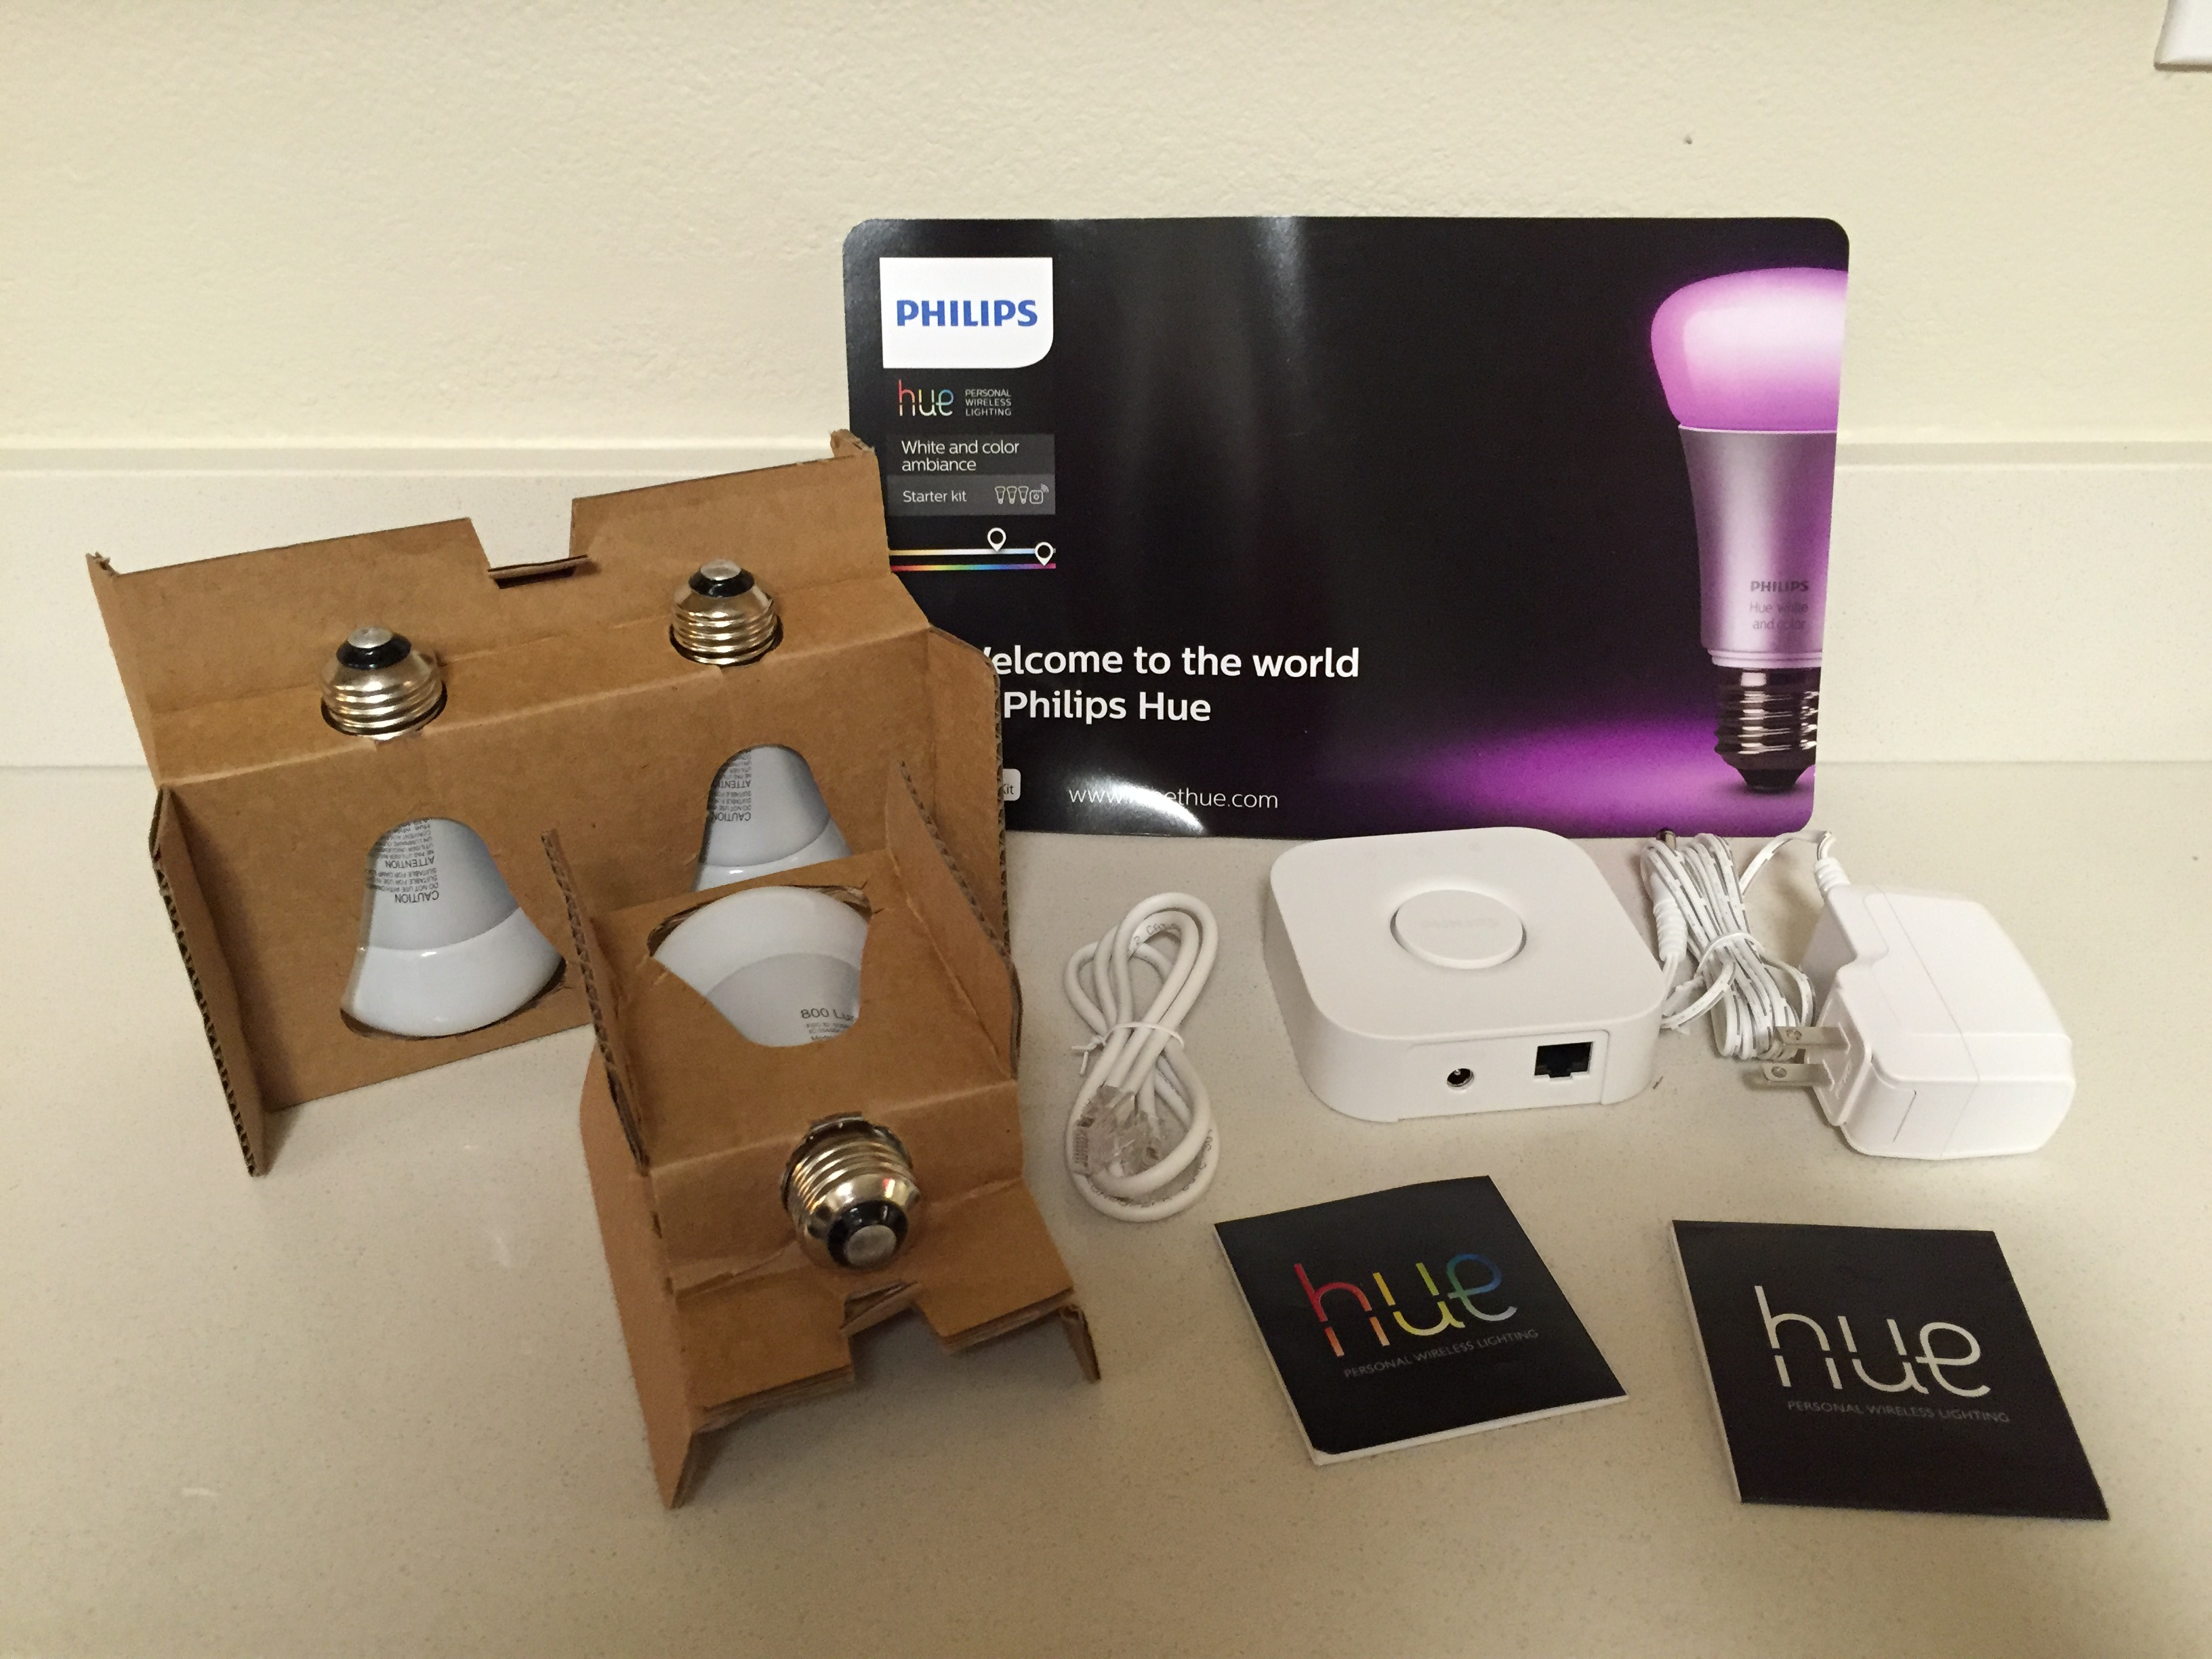 Philips Hue starter kit unboxed